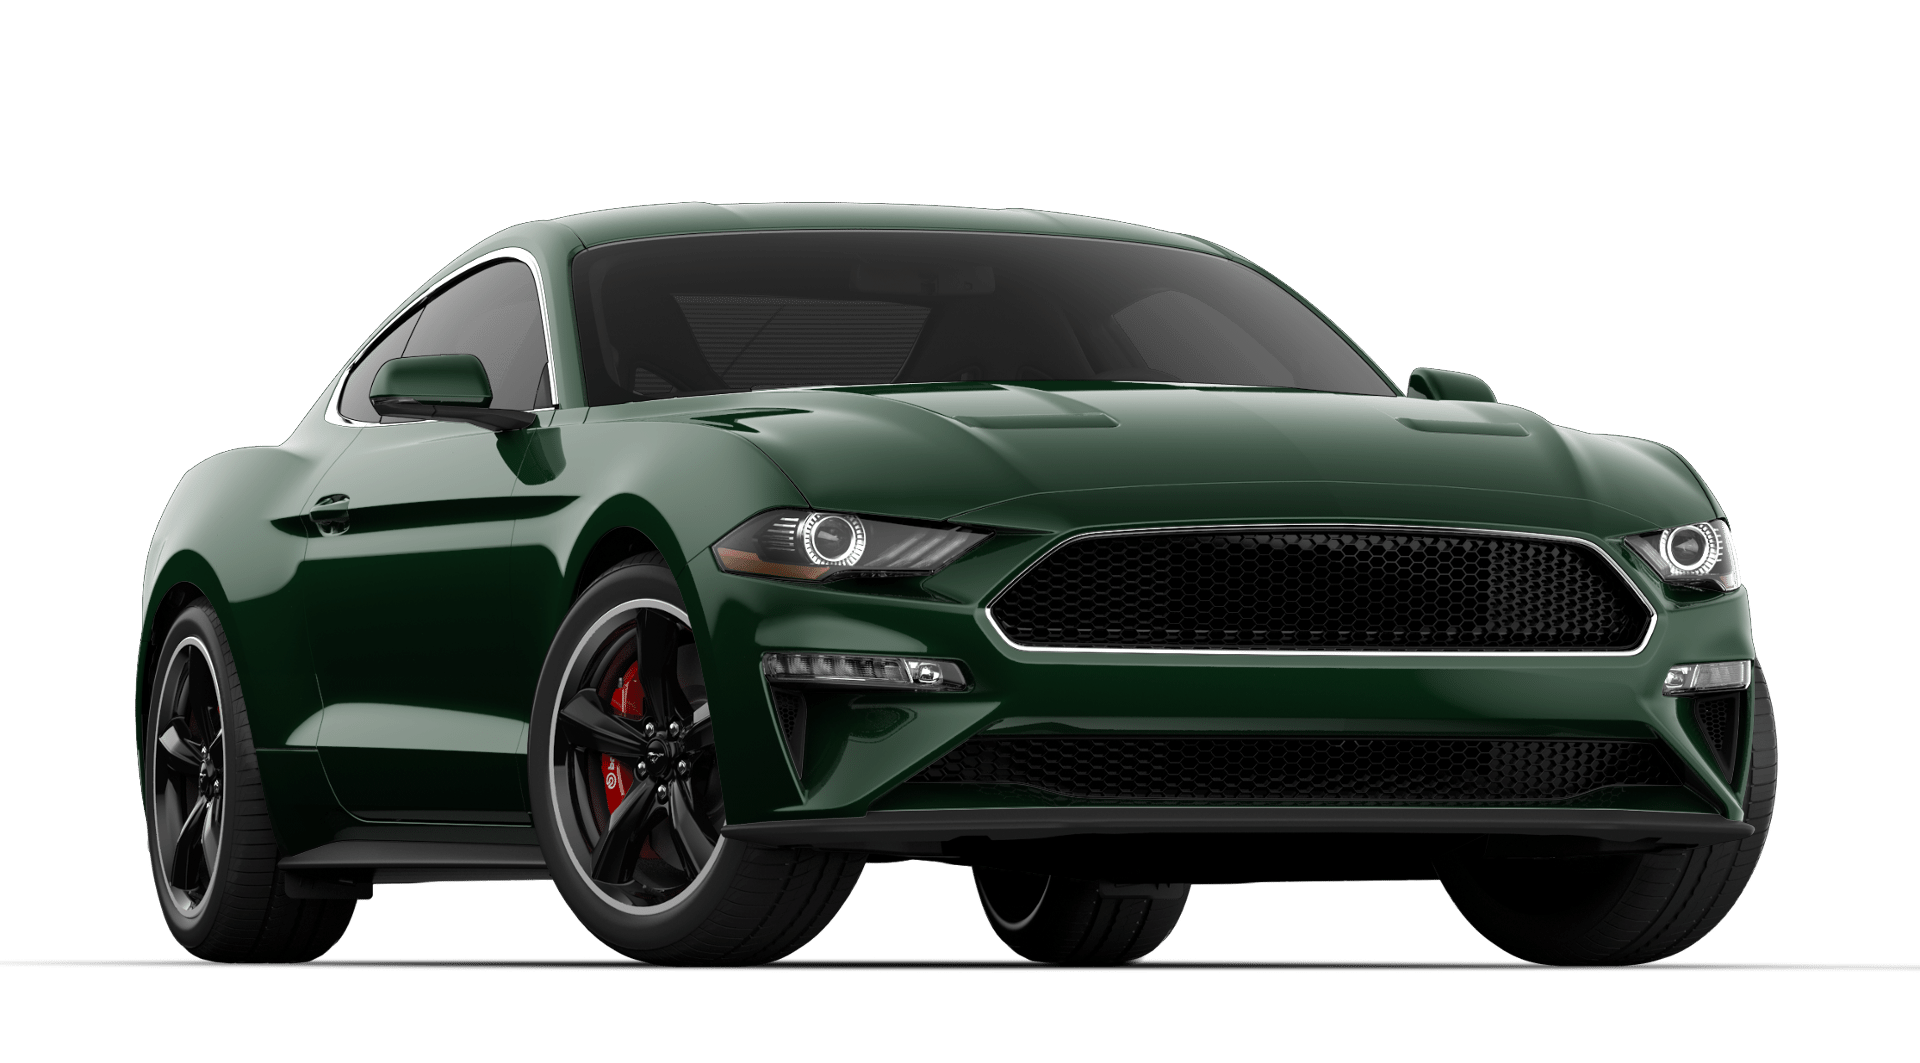 V8 GT BULLITT 500a - + DARK HIGHLAND GREEN+ 6-SPEED MANUAL+ BULLITT PACKAGE w/QUAD TIP ACTIVE EXHAUST & MAGNERIDE DAMPING SYSTEM+ VEHICLE COVER INCLUDEDsORRY - sHE'S gONE!